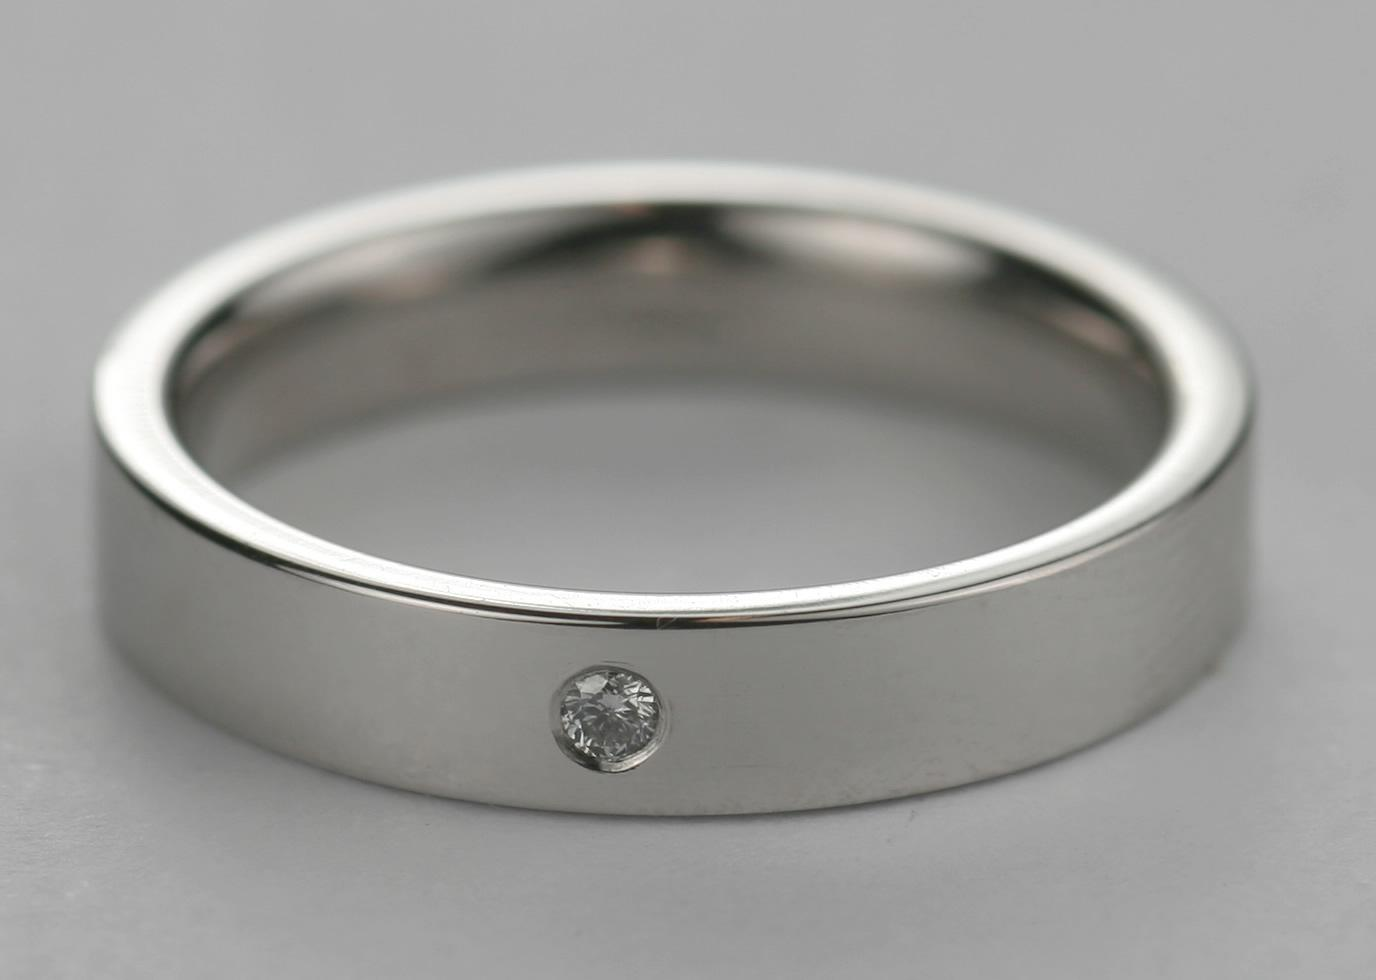 Platinum mens wedding ring